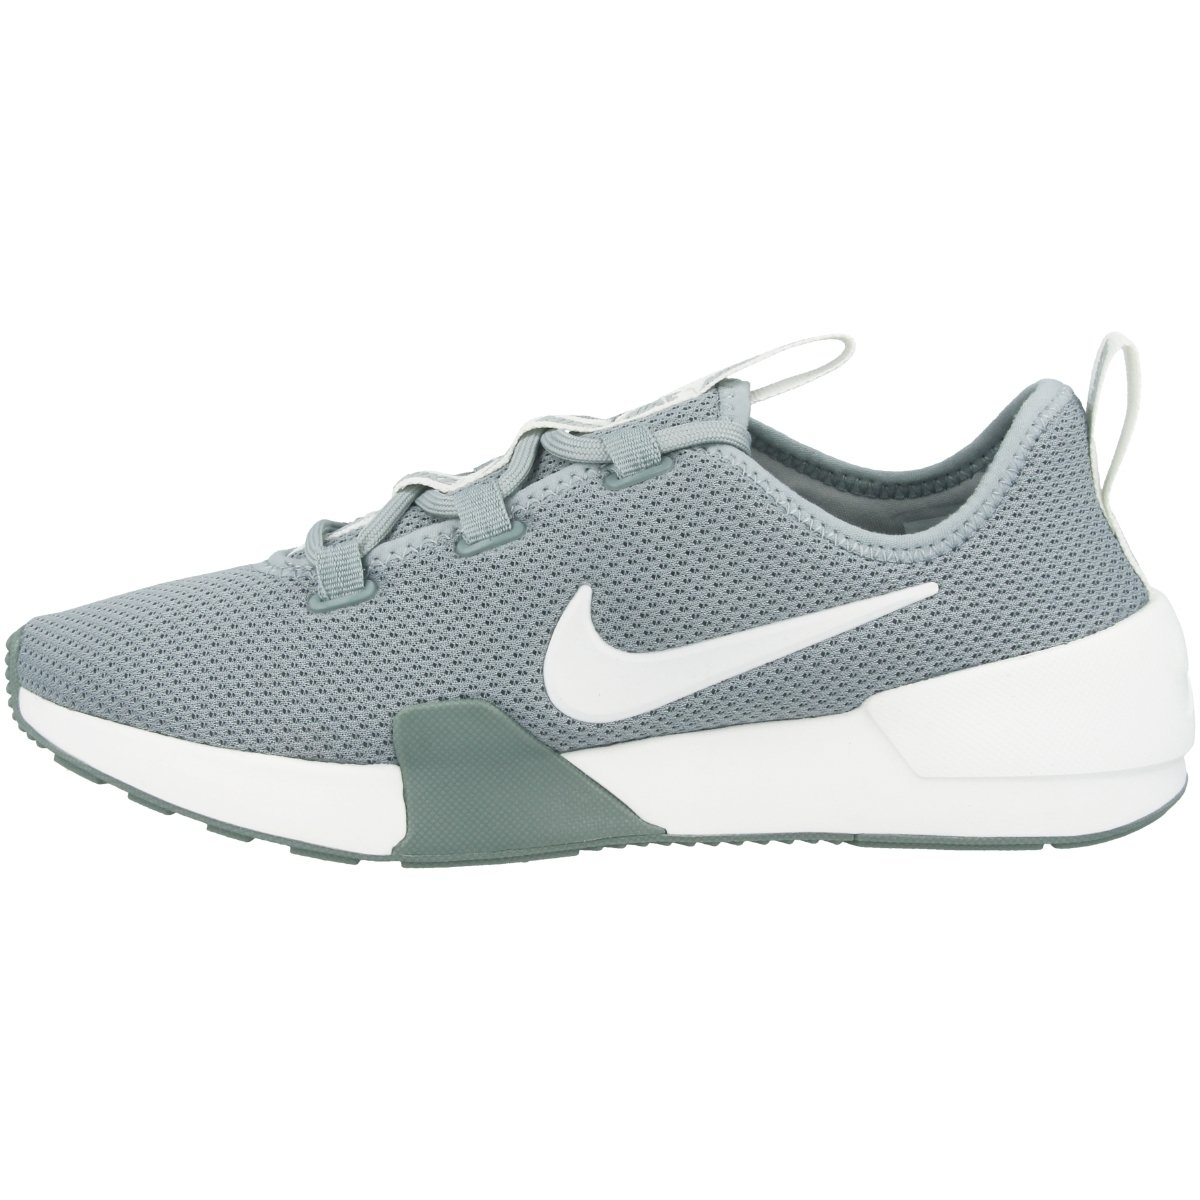 Nike W Ashin Modern, Zapatillas para Mujer 41 EU|Multicolor (Light Pumice/Summit White 001)